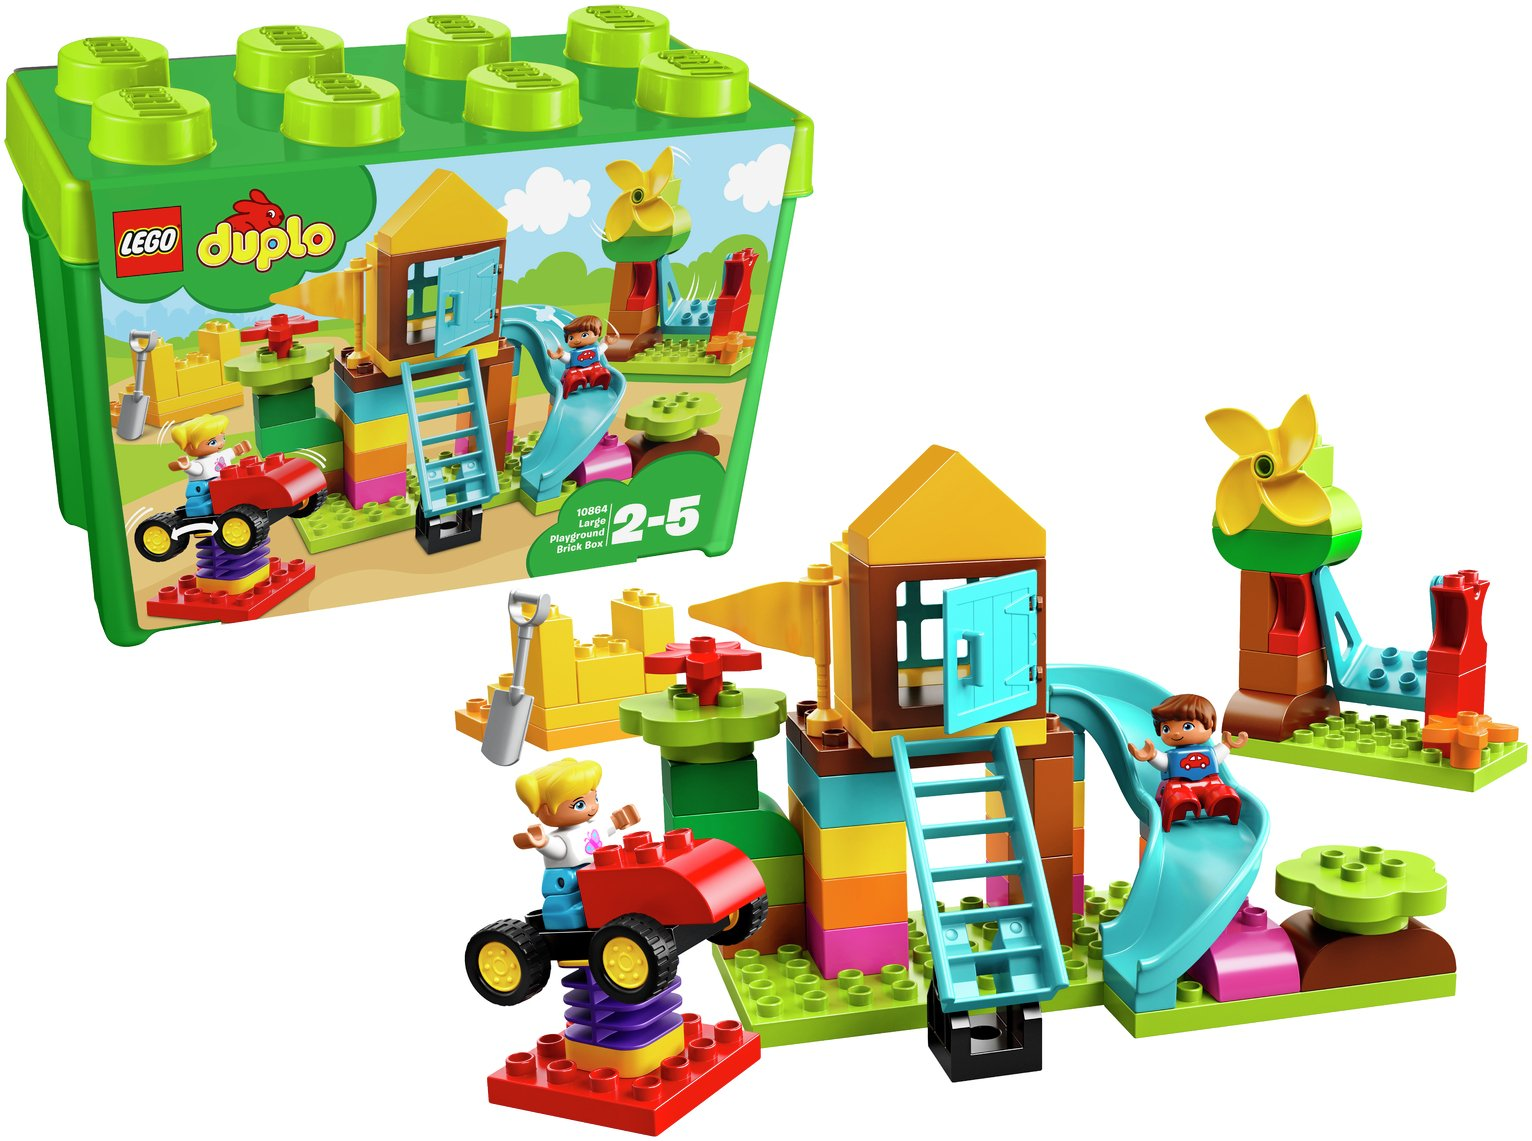 LEGO DUPLO My First Large Playground Brick Box Toy - 10864